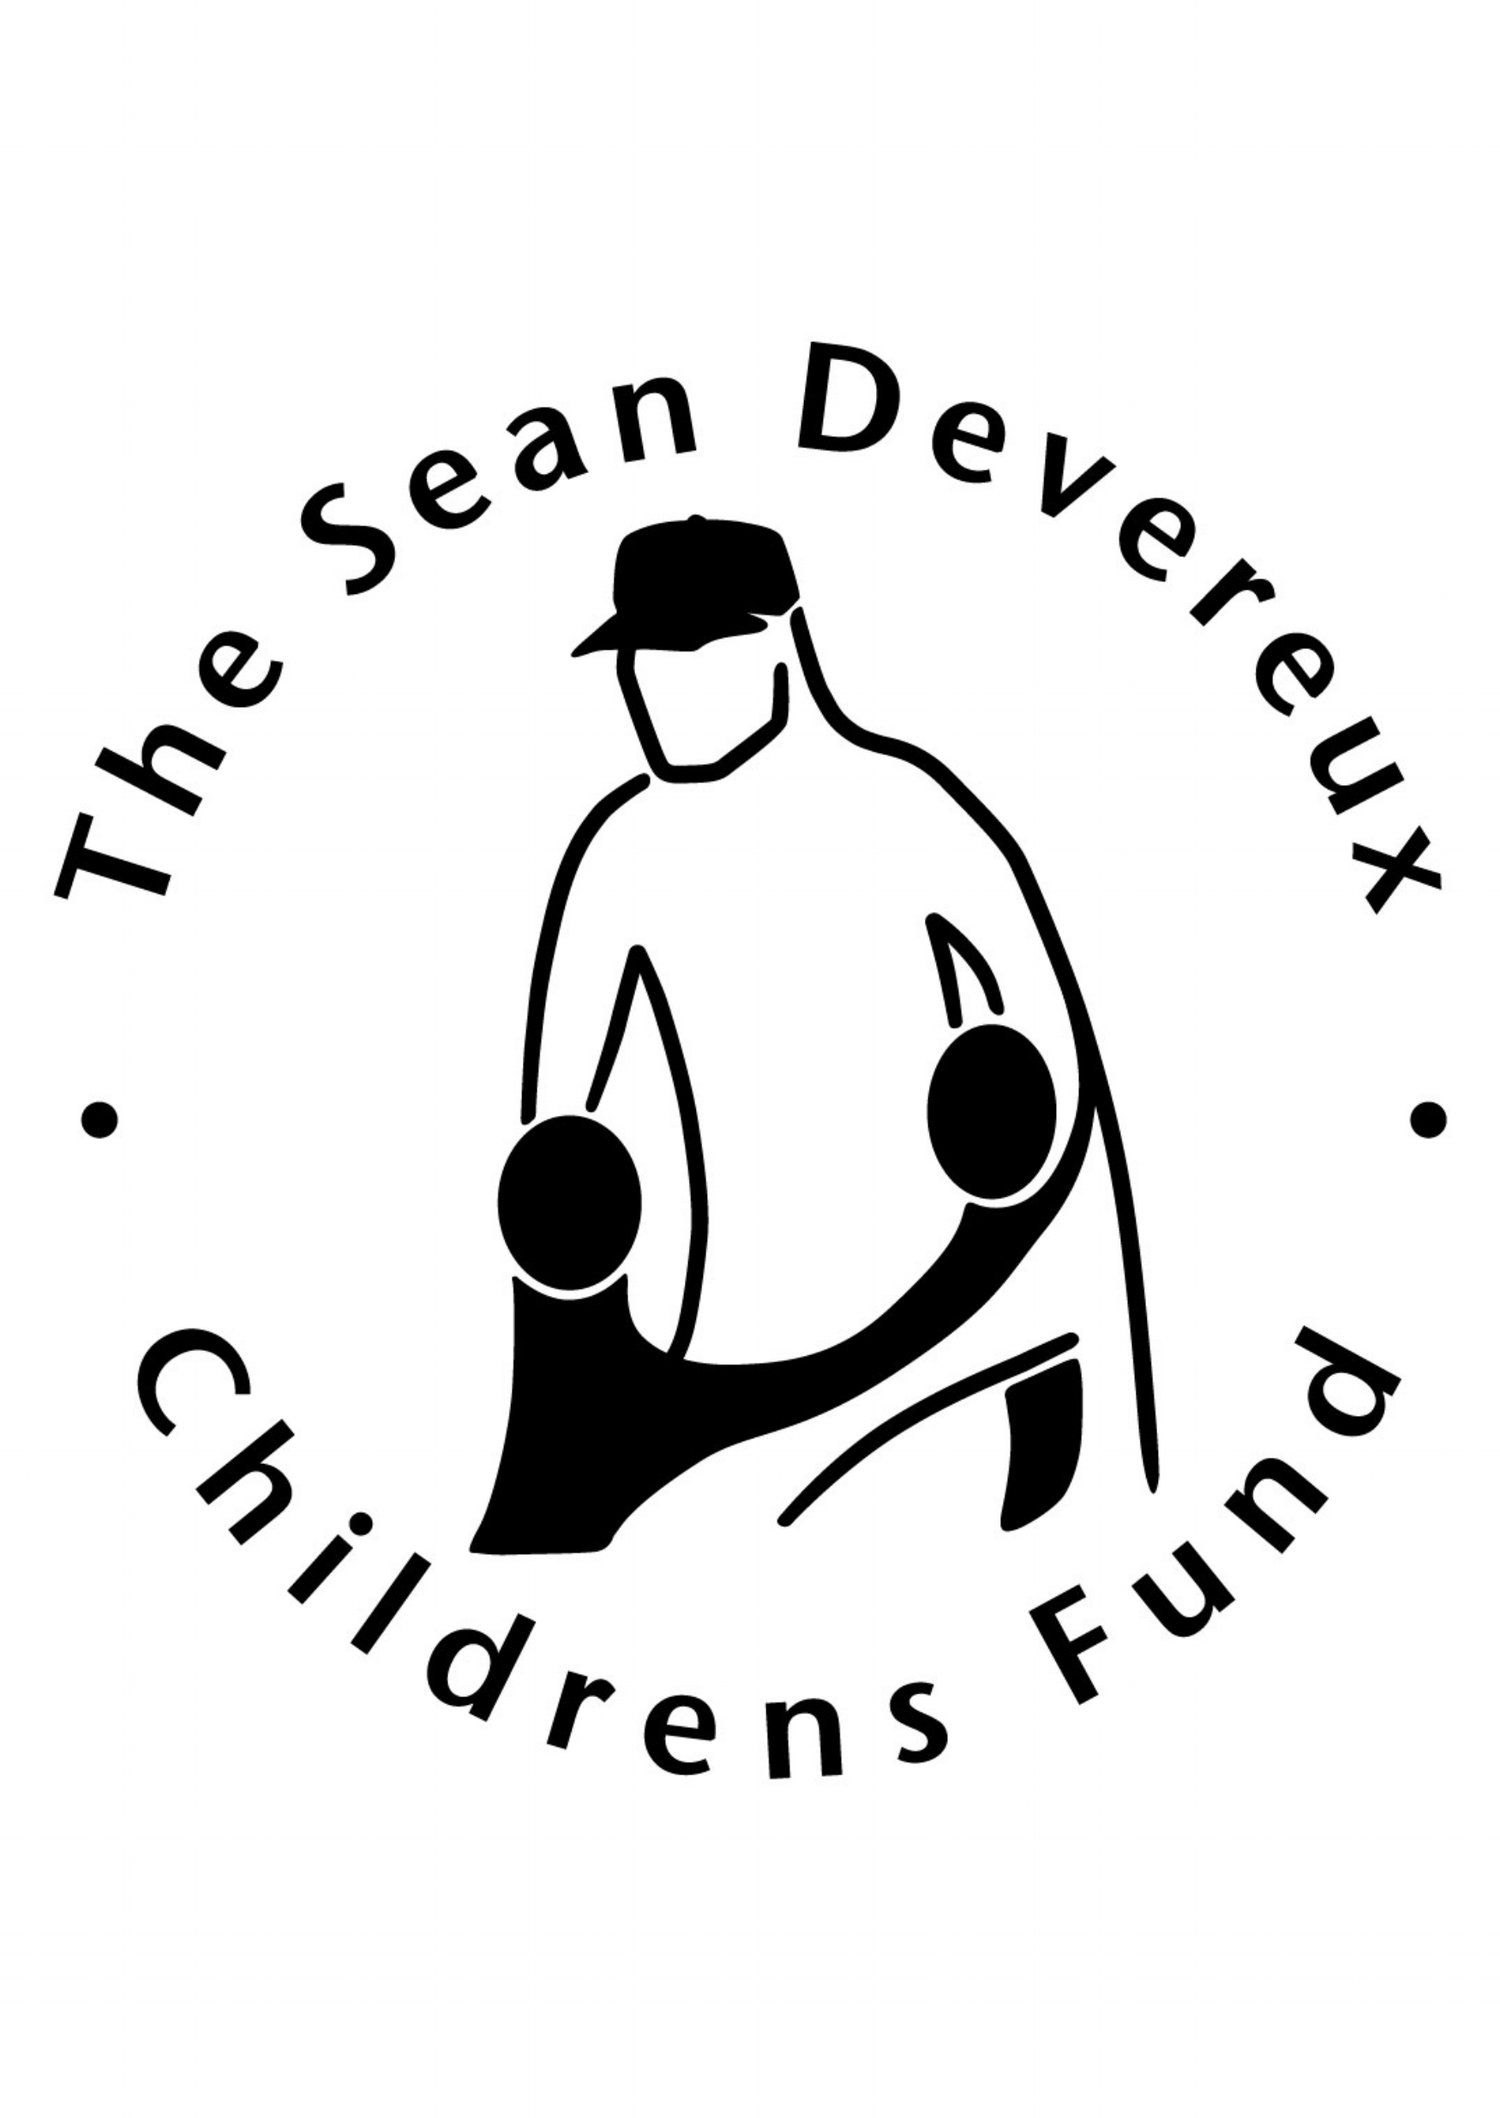 Sean Devereux Children's Fund